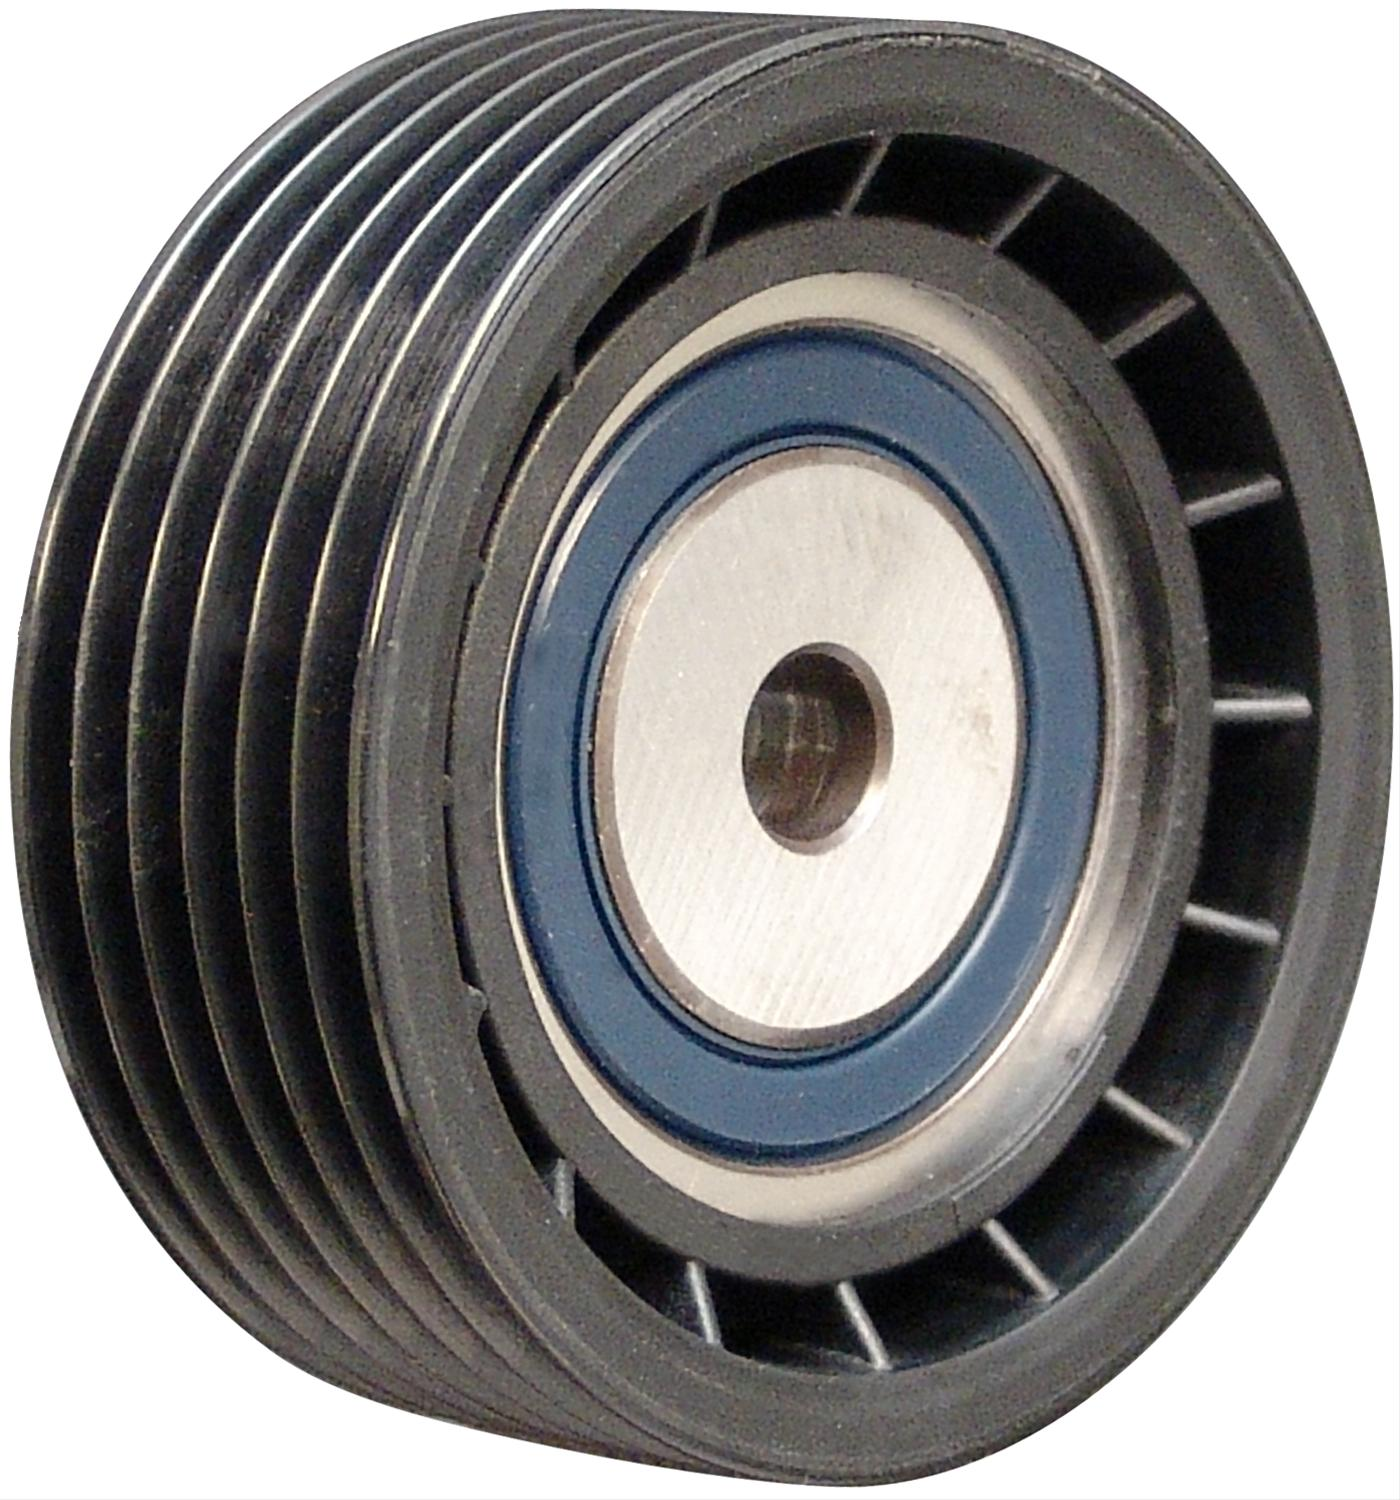 Dayco 89154 Idler Pulley